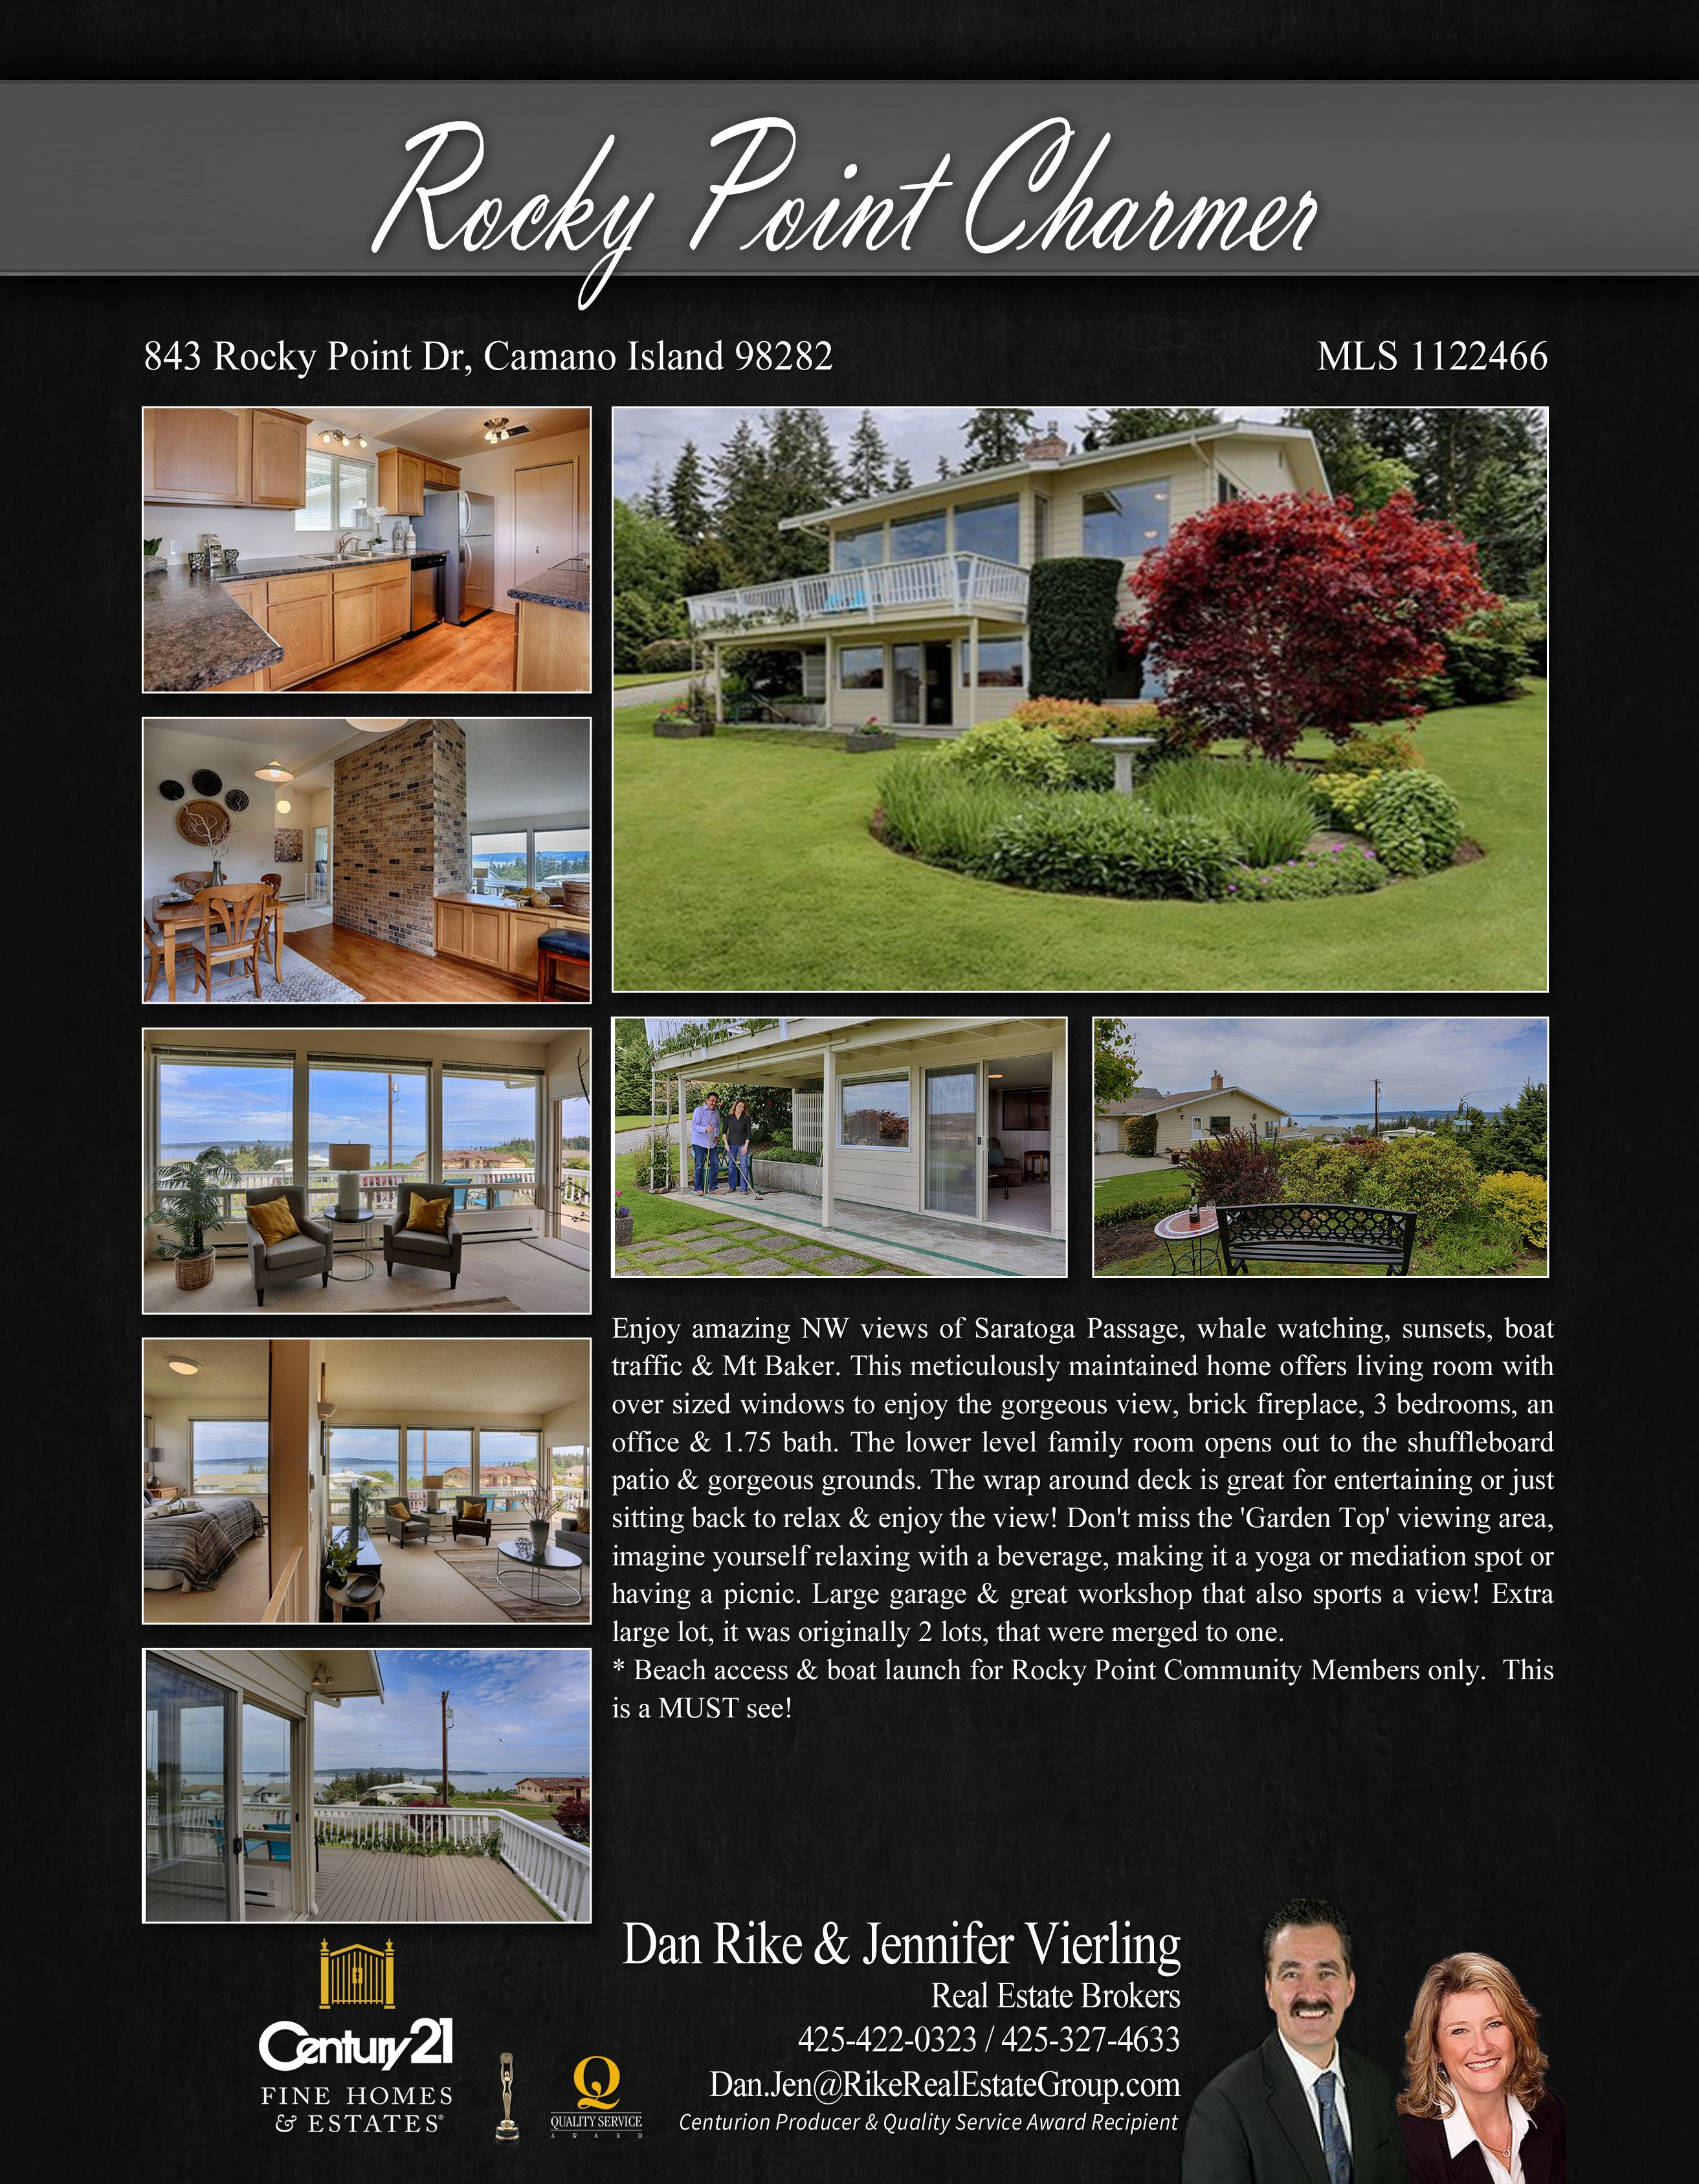 You Could Enjoy Great Awesome Views With This Newly Listed Property In Camano Island Insterested You May Contact Brick Fireplace Camano Island Gorgeous View